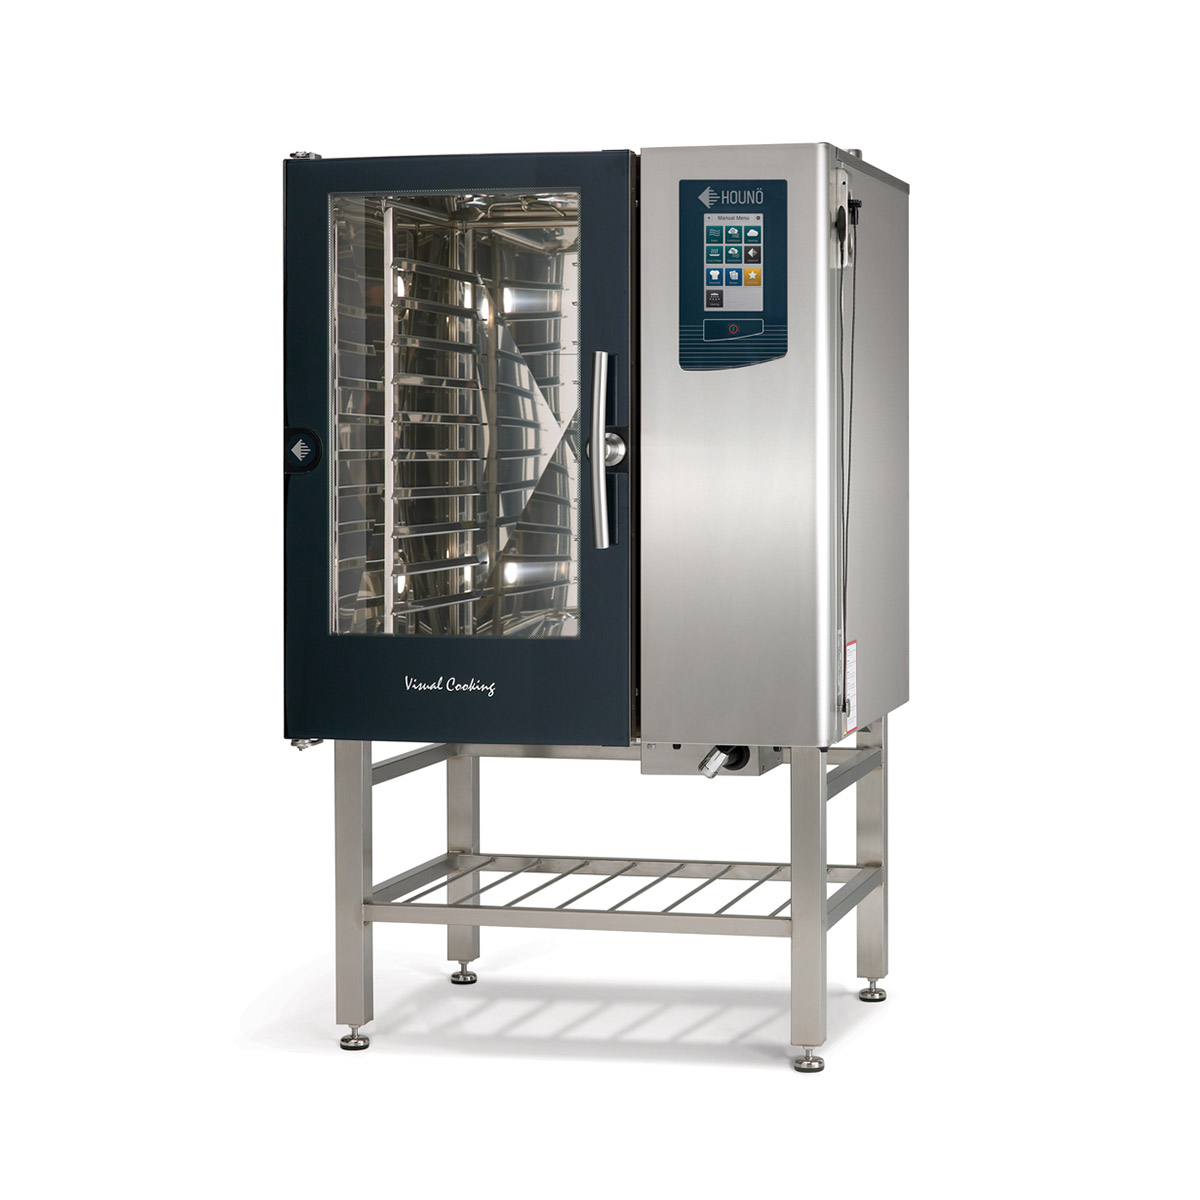 Houno K & KPE 1.10 Combi Oven Electric 10 Tray Oven – 4 Year Warranty